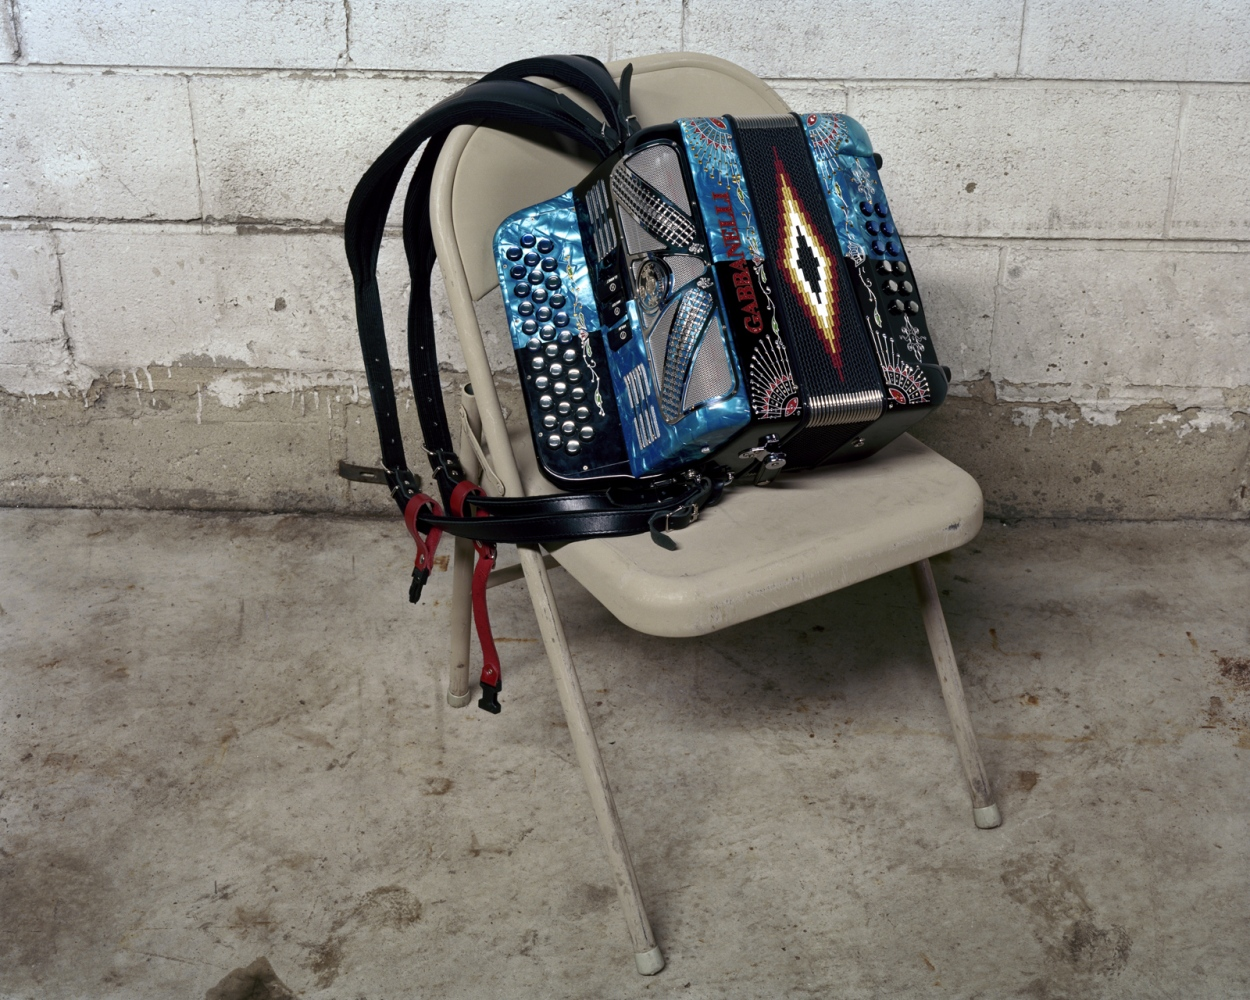 Accordion, Chicago, IL 2014